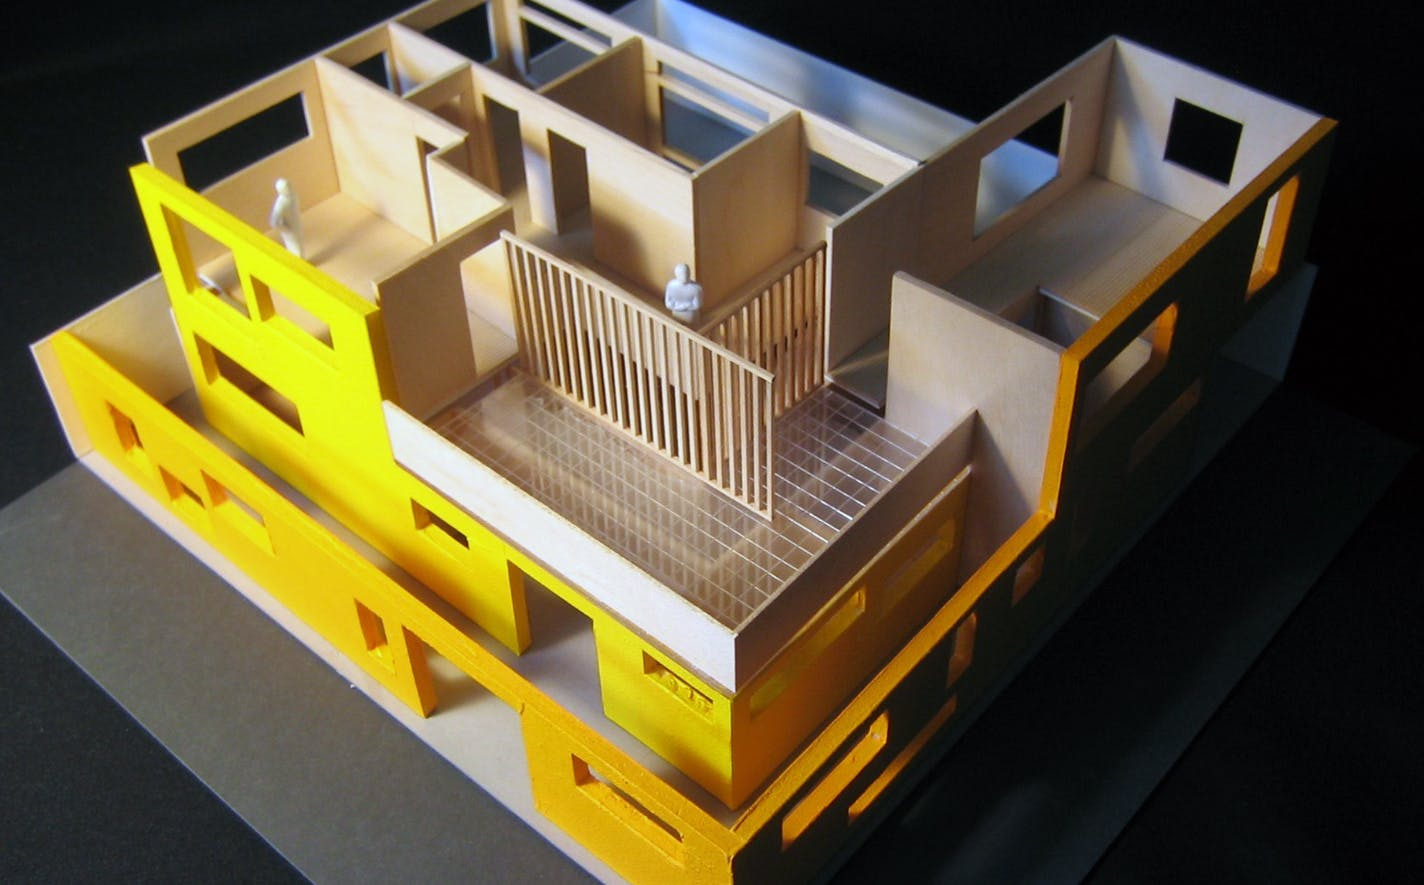 Courtyard house nick criscione archinect for Model house building materials